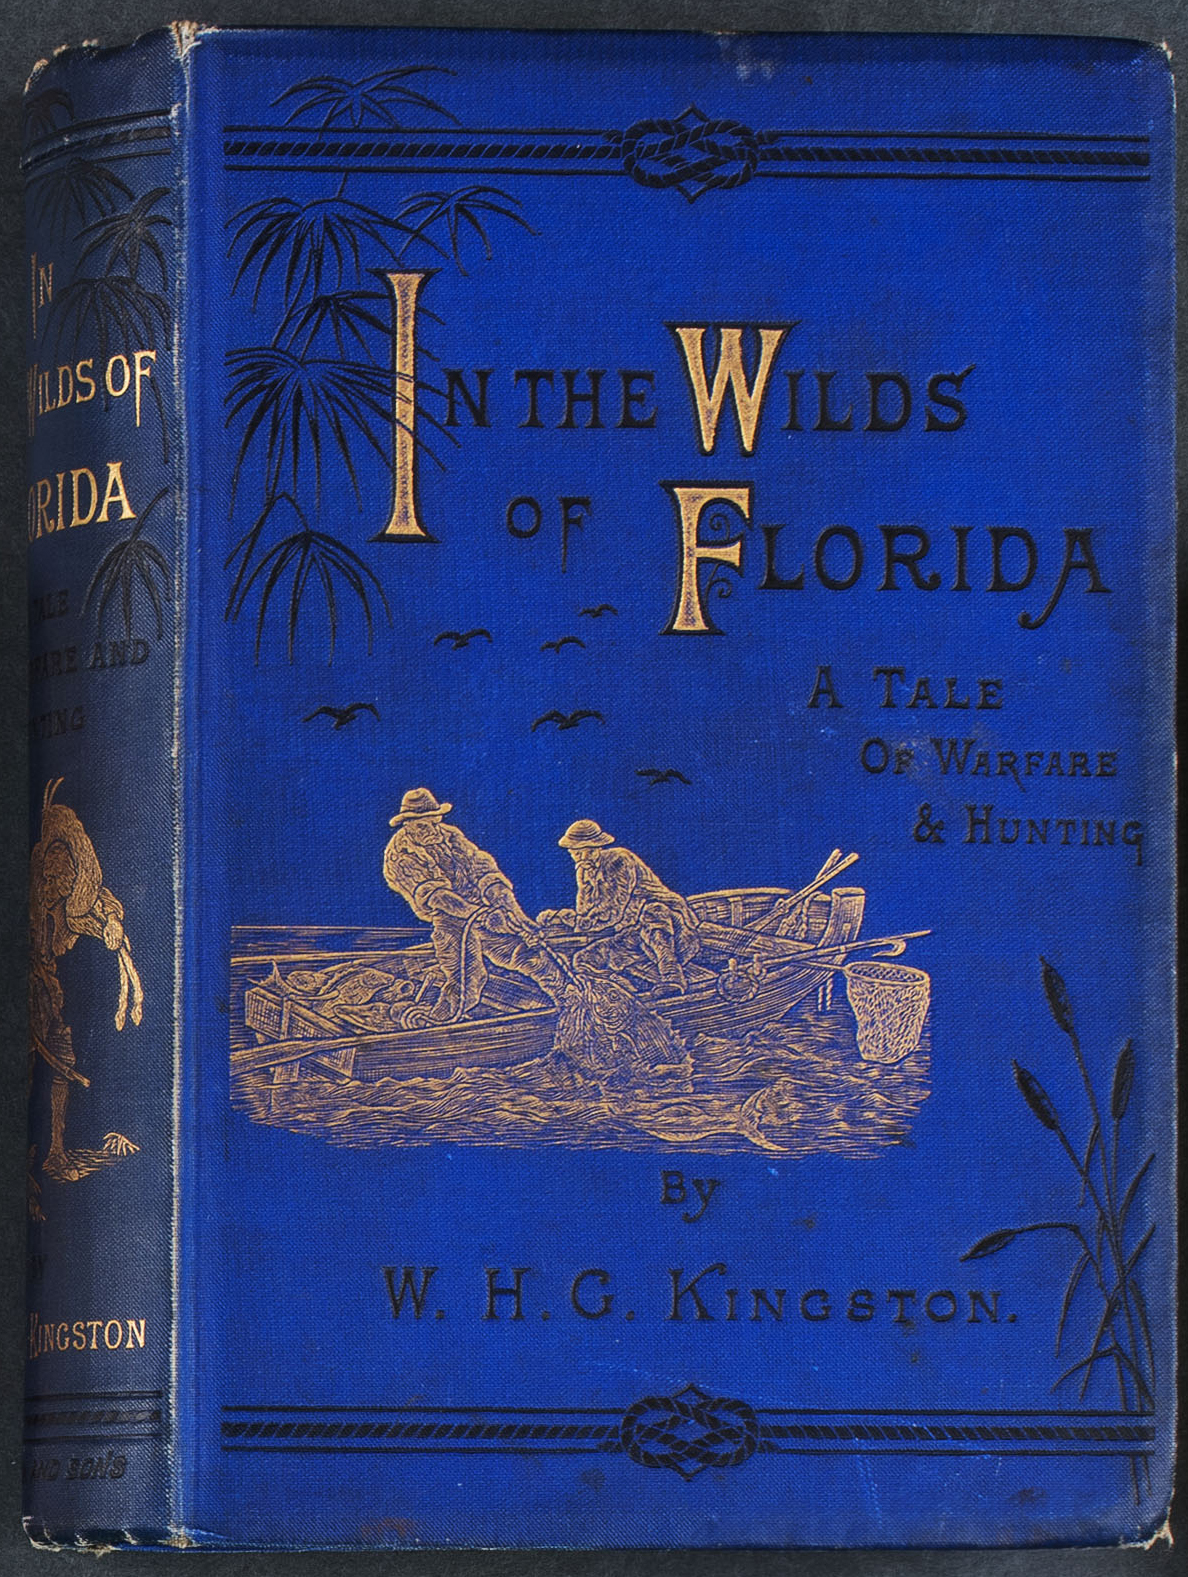 A book titled In the Wilds of Florida housed in Special Collections.